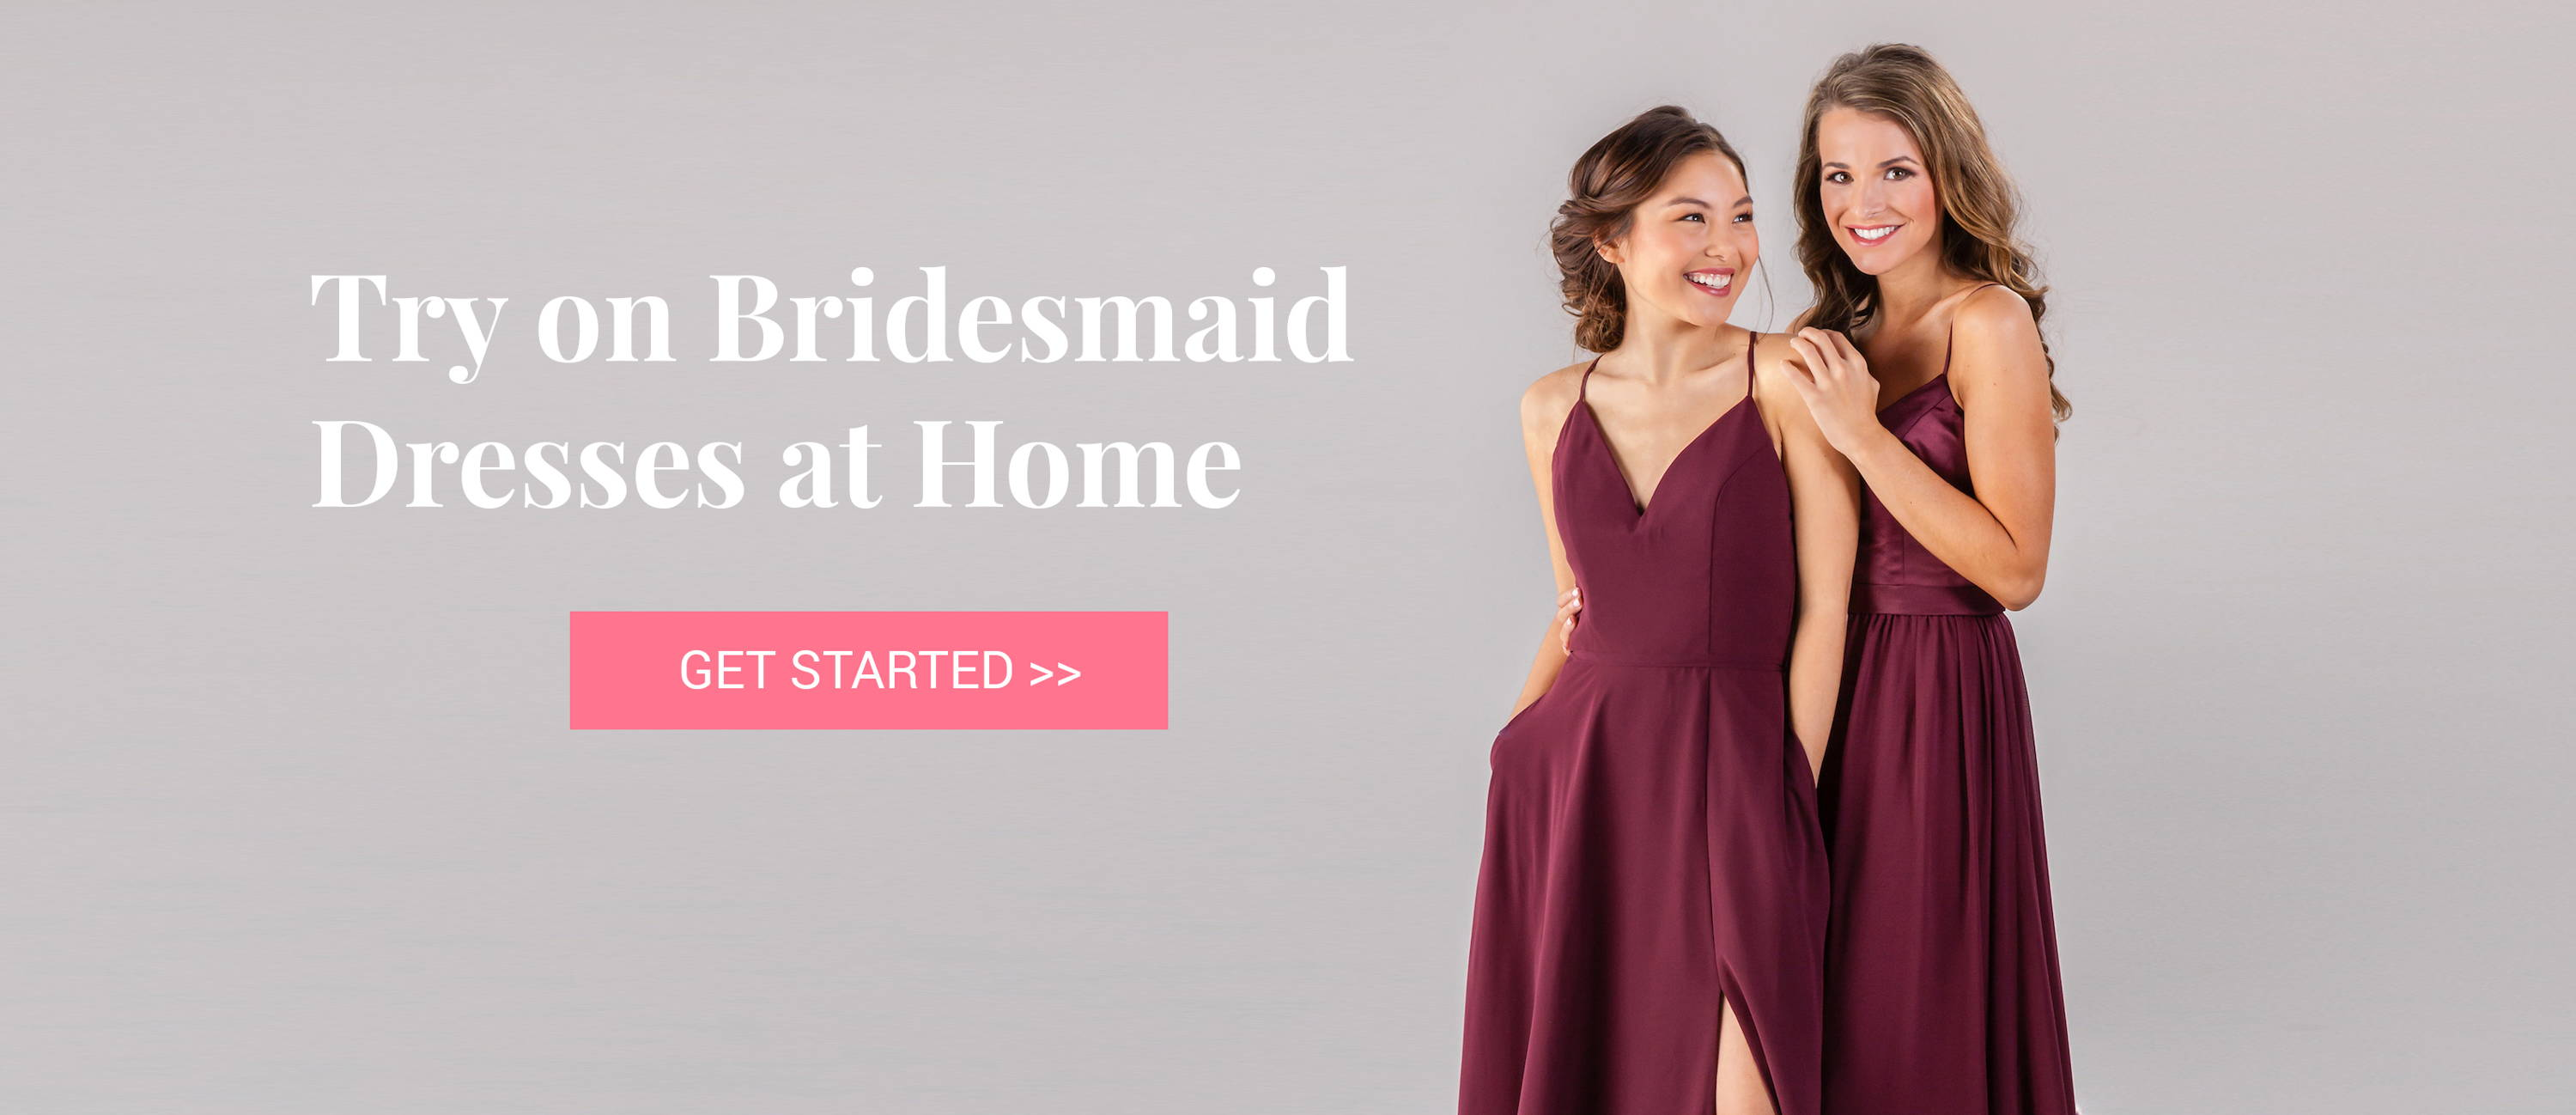 Try on bridesmaid dresses at home remember when shopping for bridesmaid dresses was fun now its crowded dressing rooms busy schedules confusing sizing unreliable colors ombrellifo Gallery